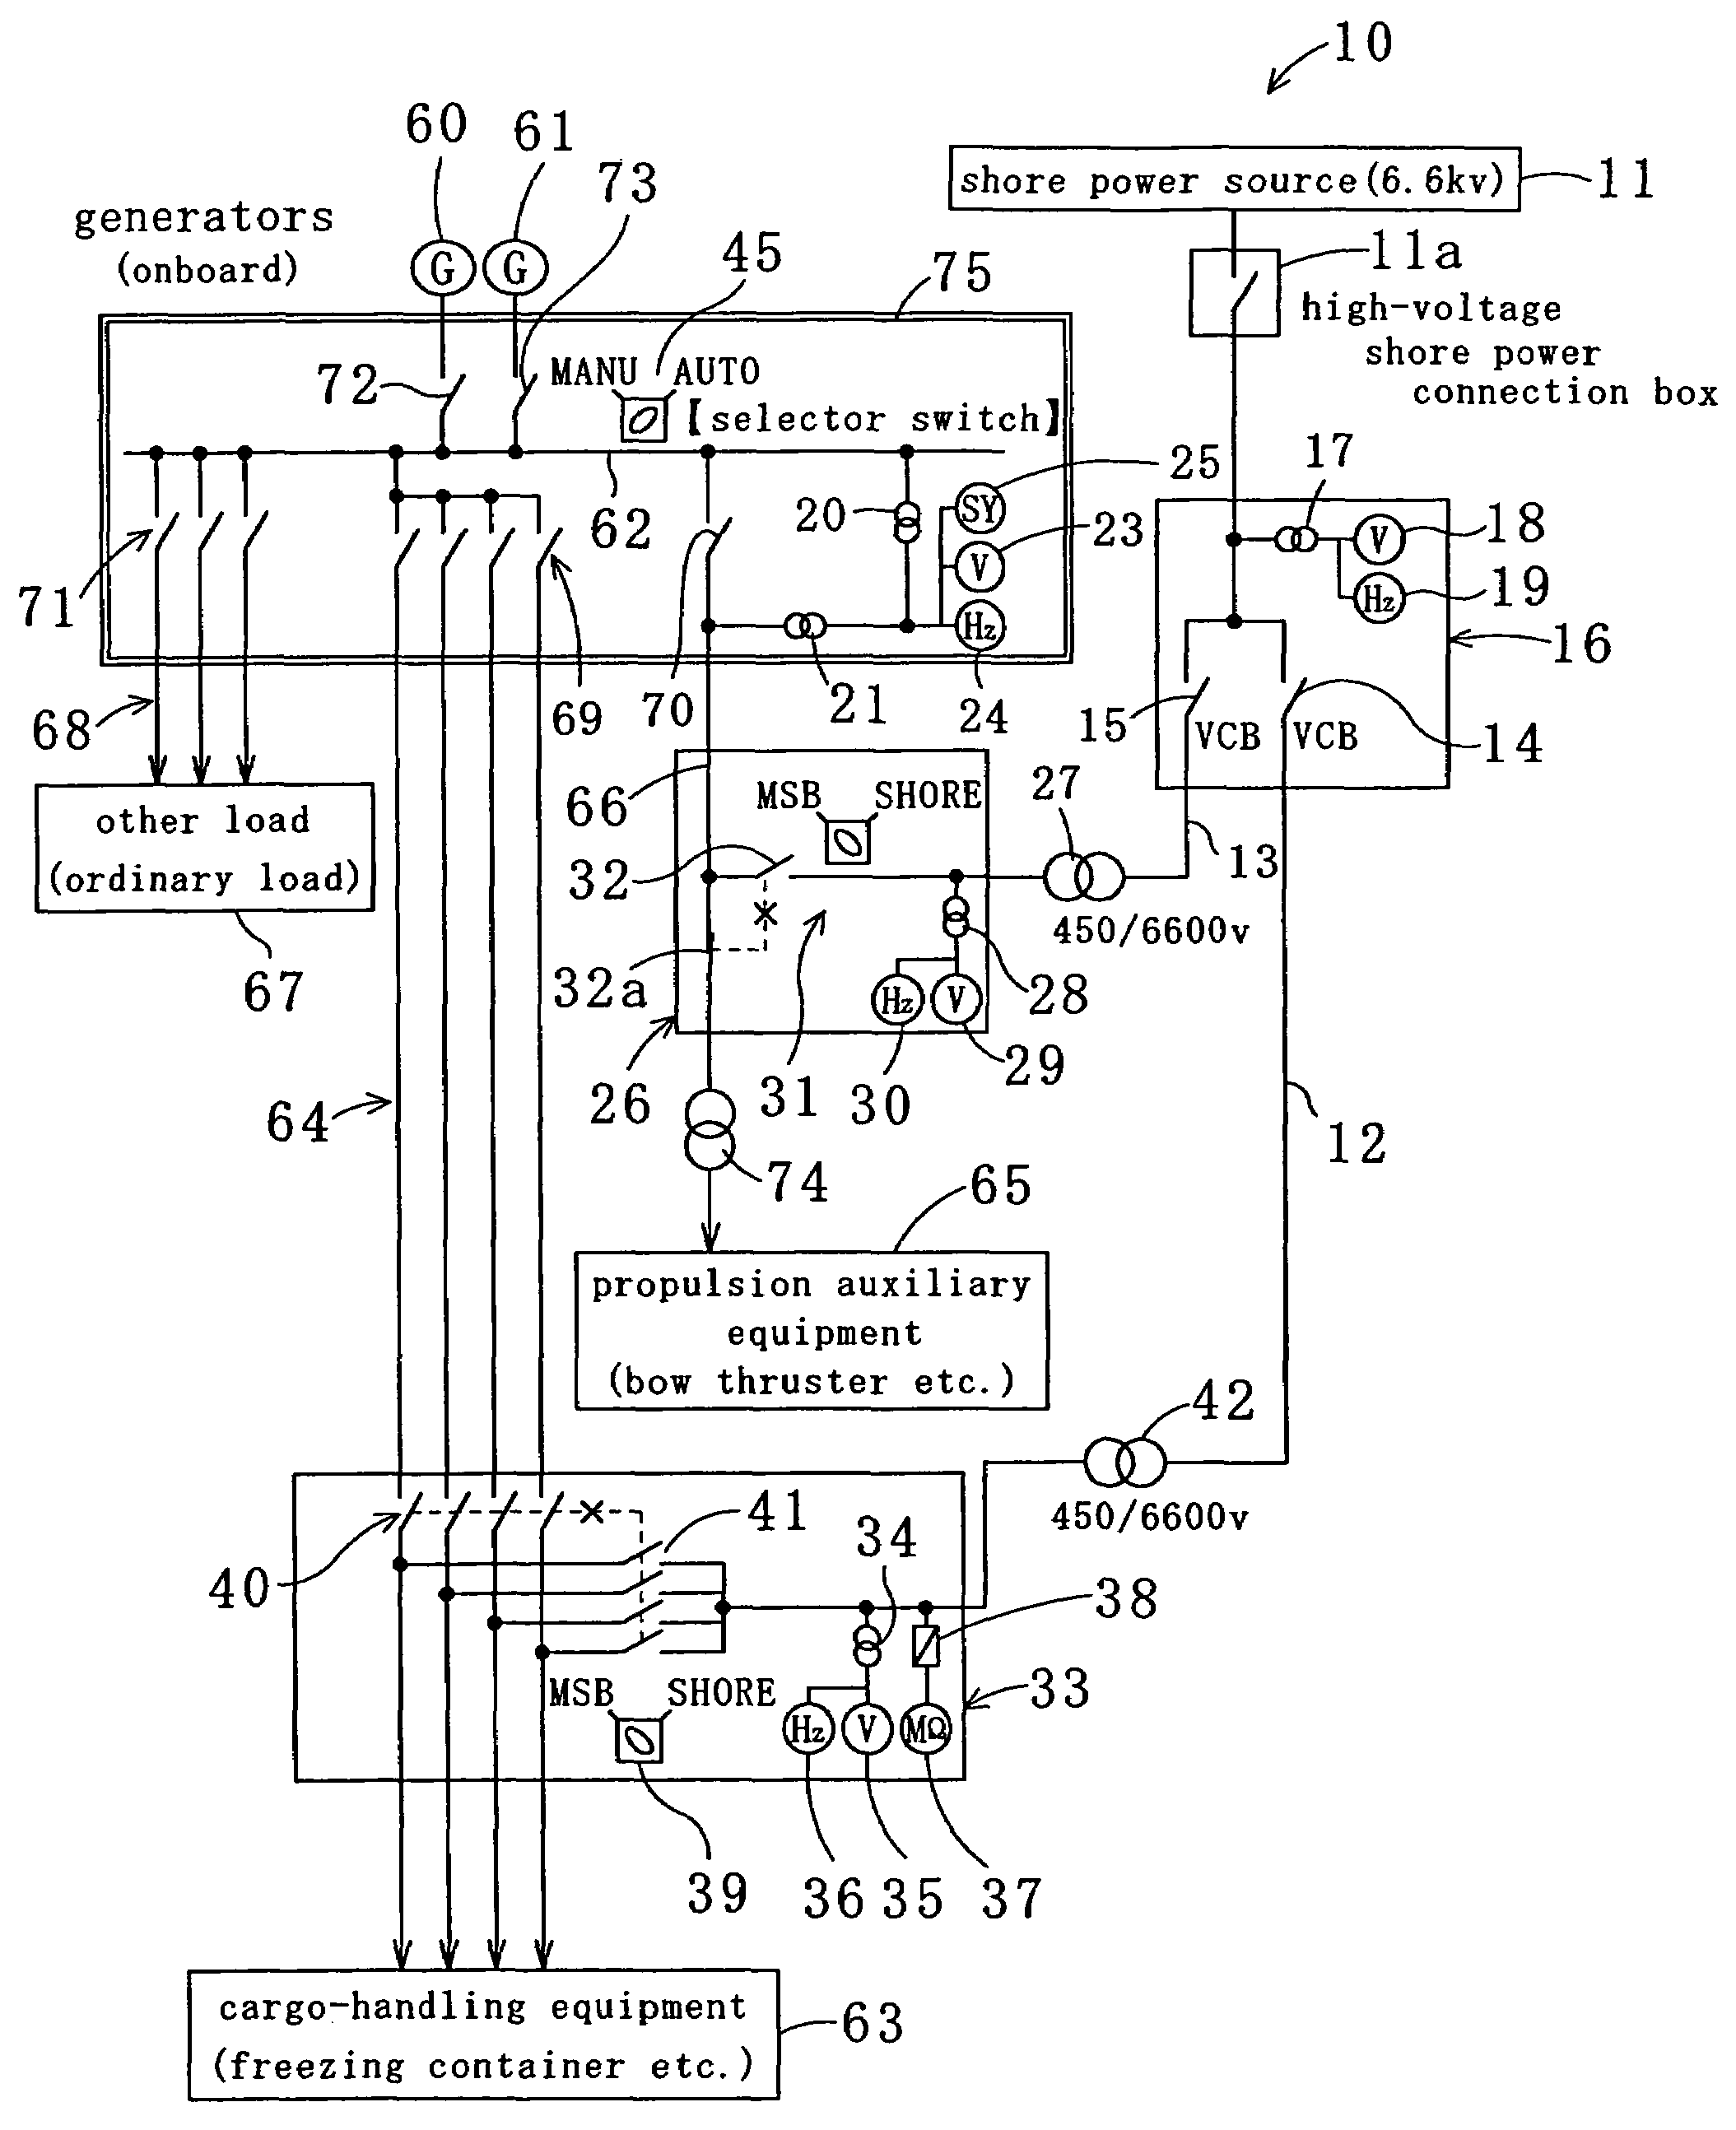 US07253538 20070807 D00000 patent us7253538 method of supplying electric power from shore vcb panel wiring diagram at mifinder.co